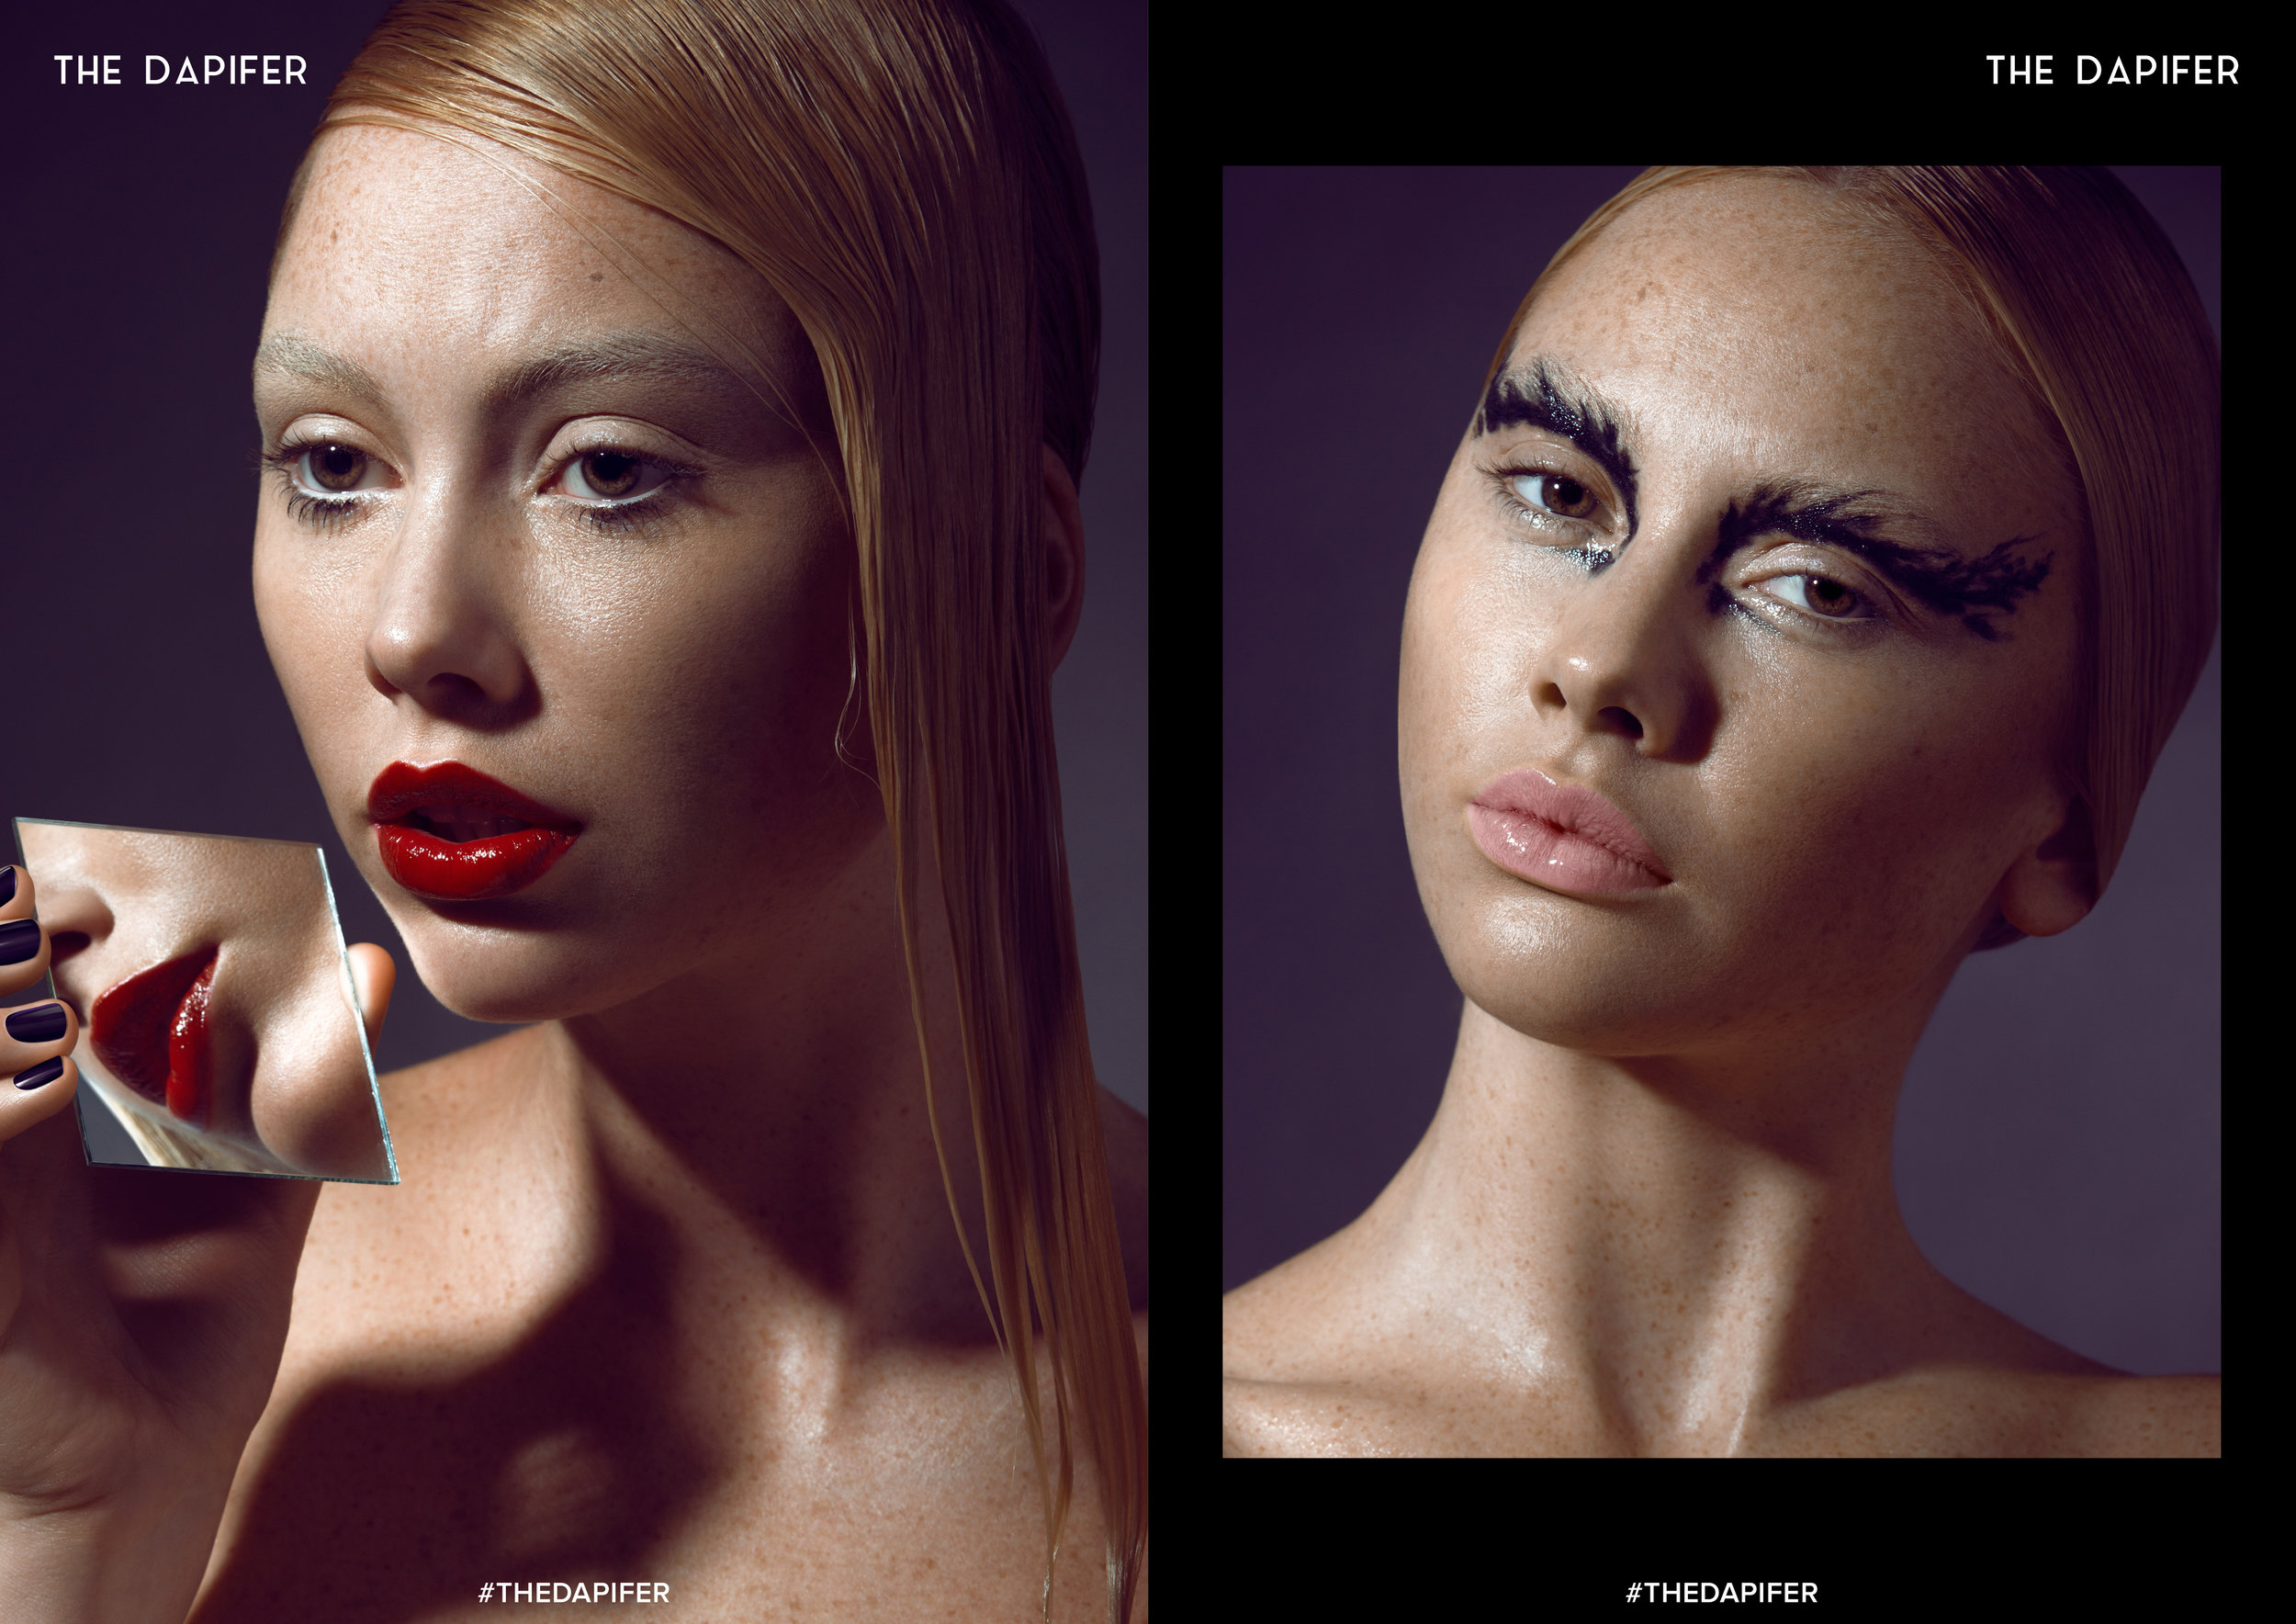 Aleksandra D by Photographer Marta McAdams Beauty Editorial - The Dapifer3.jpg